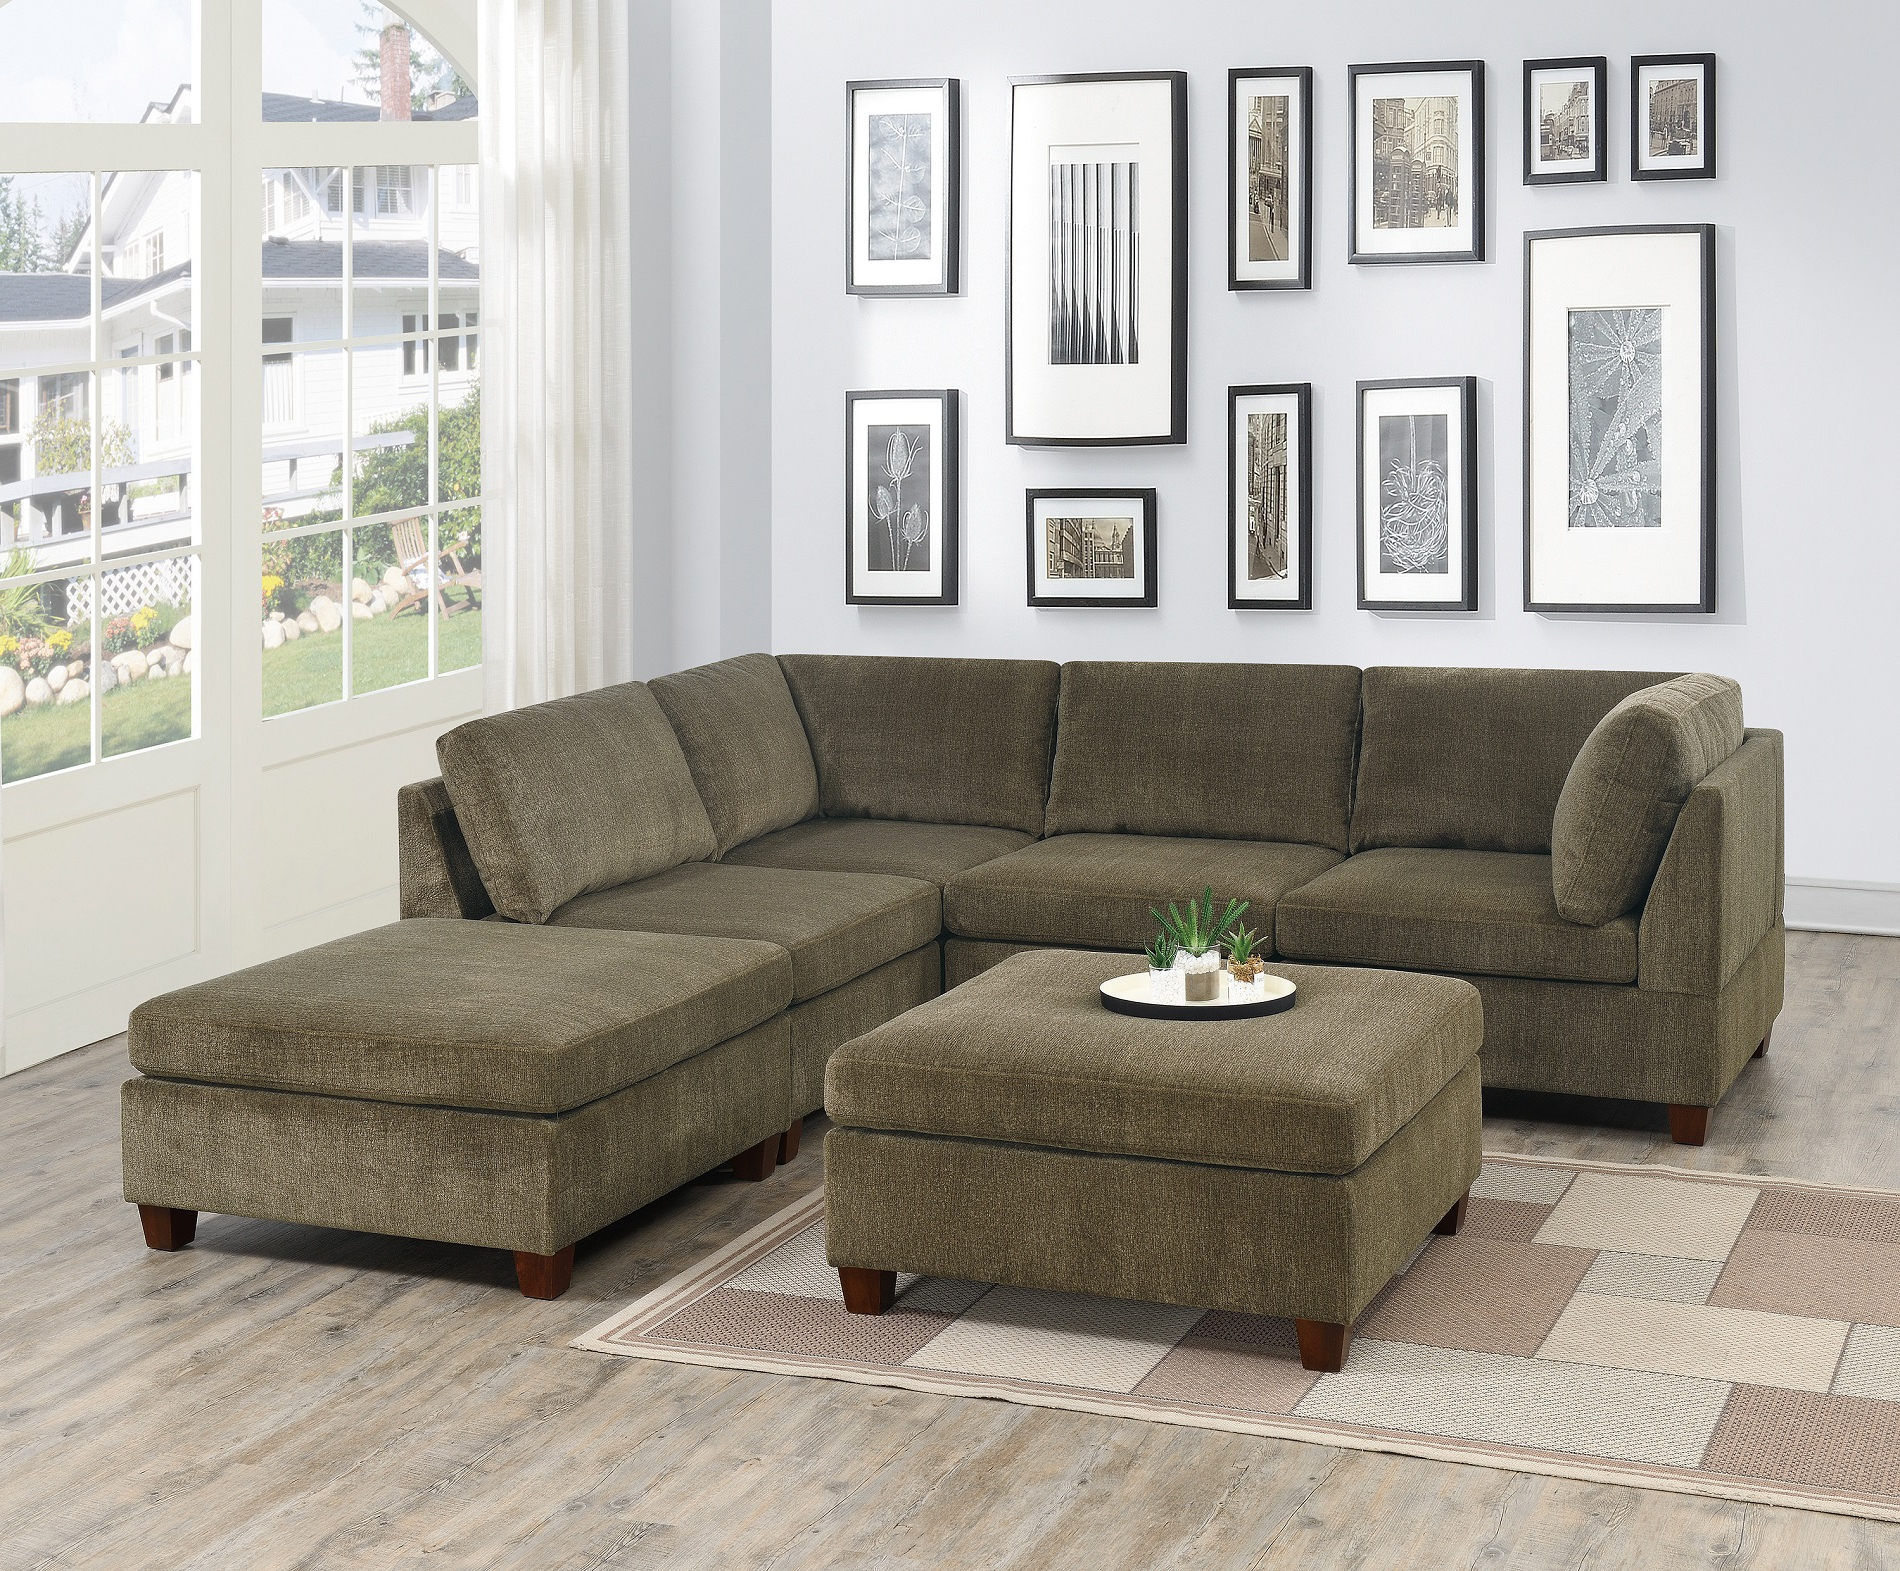 Mireille Modern And Contemporary Fabric Upholstered Sectional Sofas Pertaining To Most Recent Contemporary Modern Unique Modular 6Pc Sectional Sofa Set (View 1 of 25)